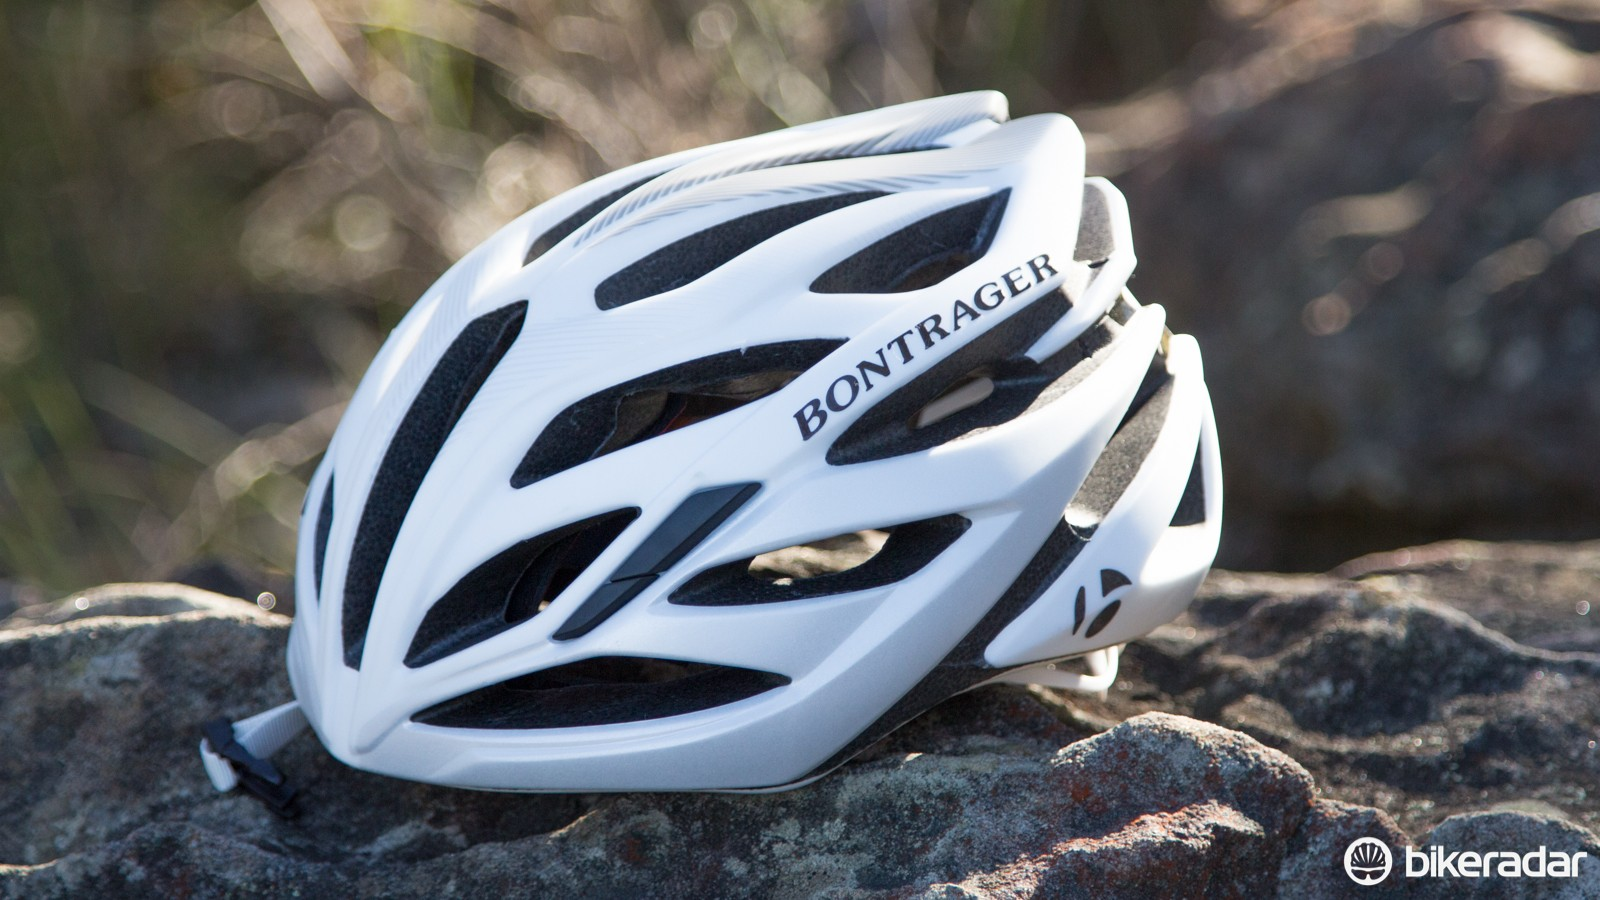 The Bontrager Circuit is a nice looking helmet for the price